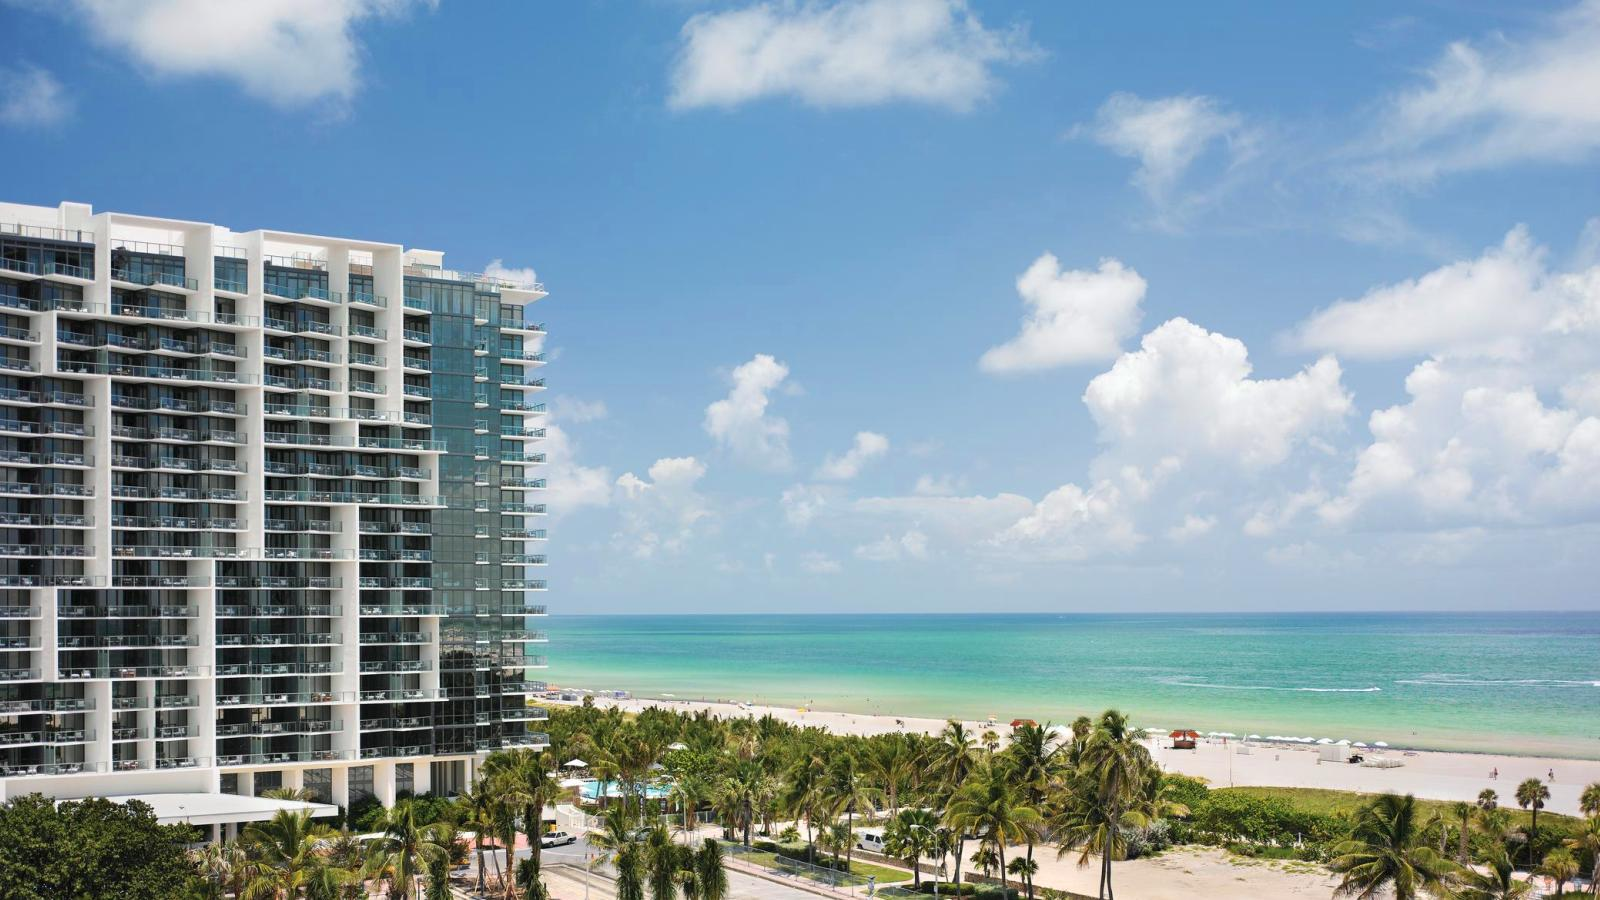 Depart reality for luxurious miami fashion s on vacation